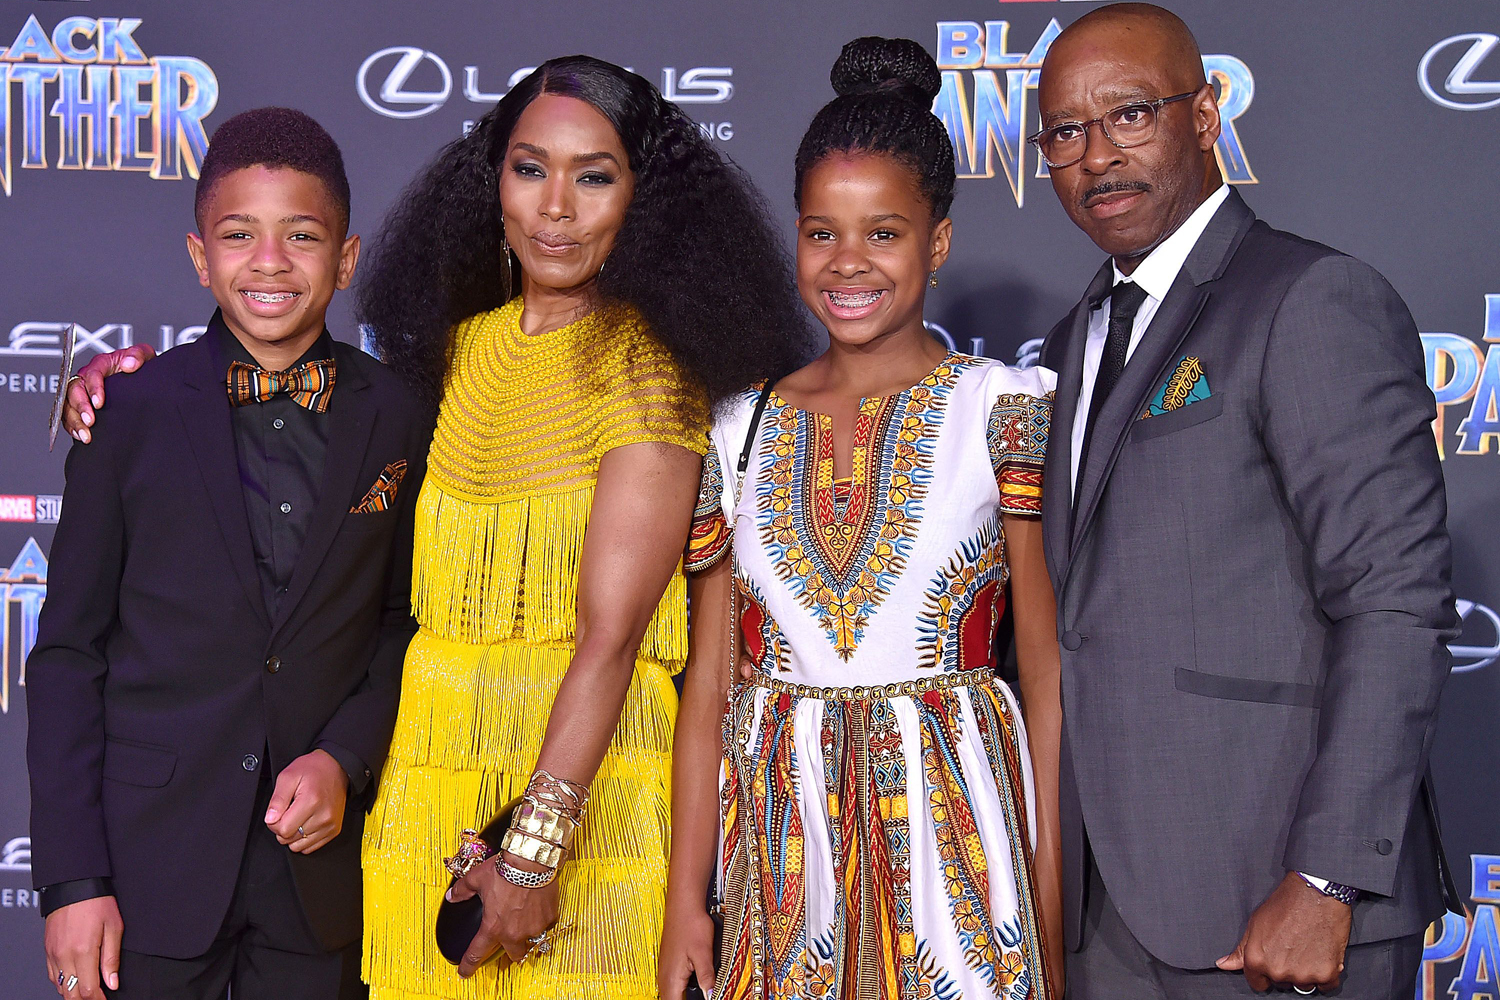 Angela Bassett and Courtney B. Vance with their kdis